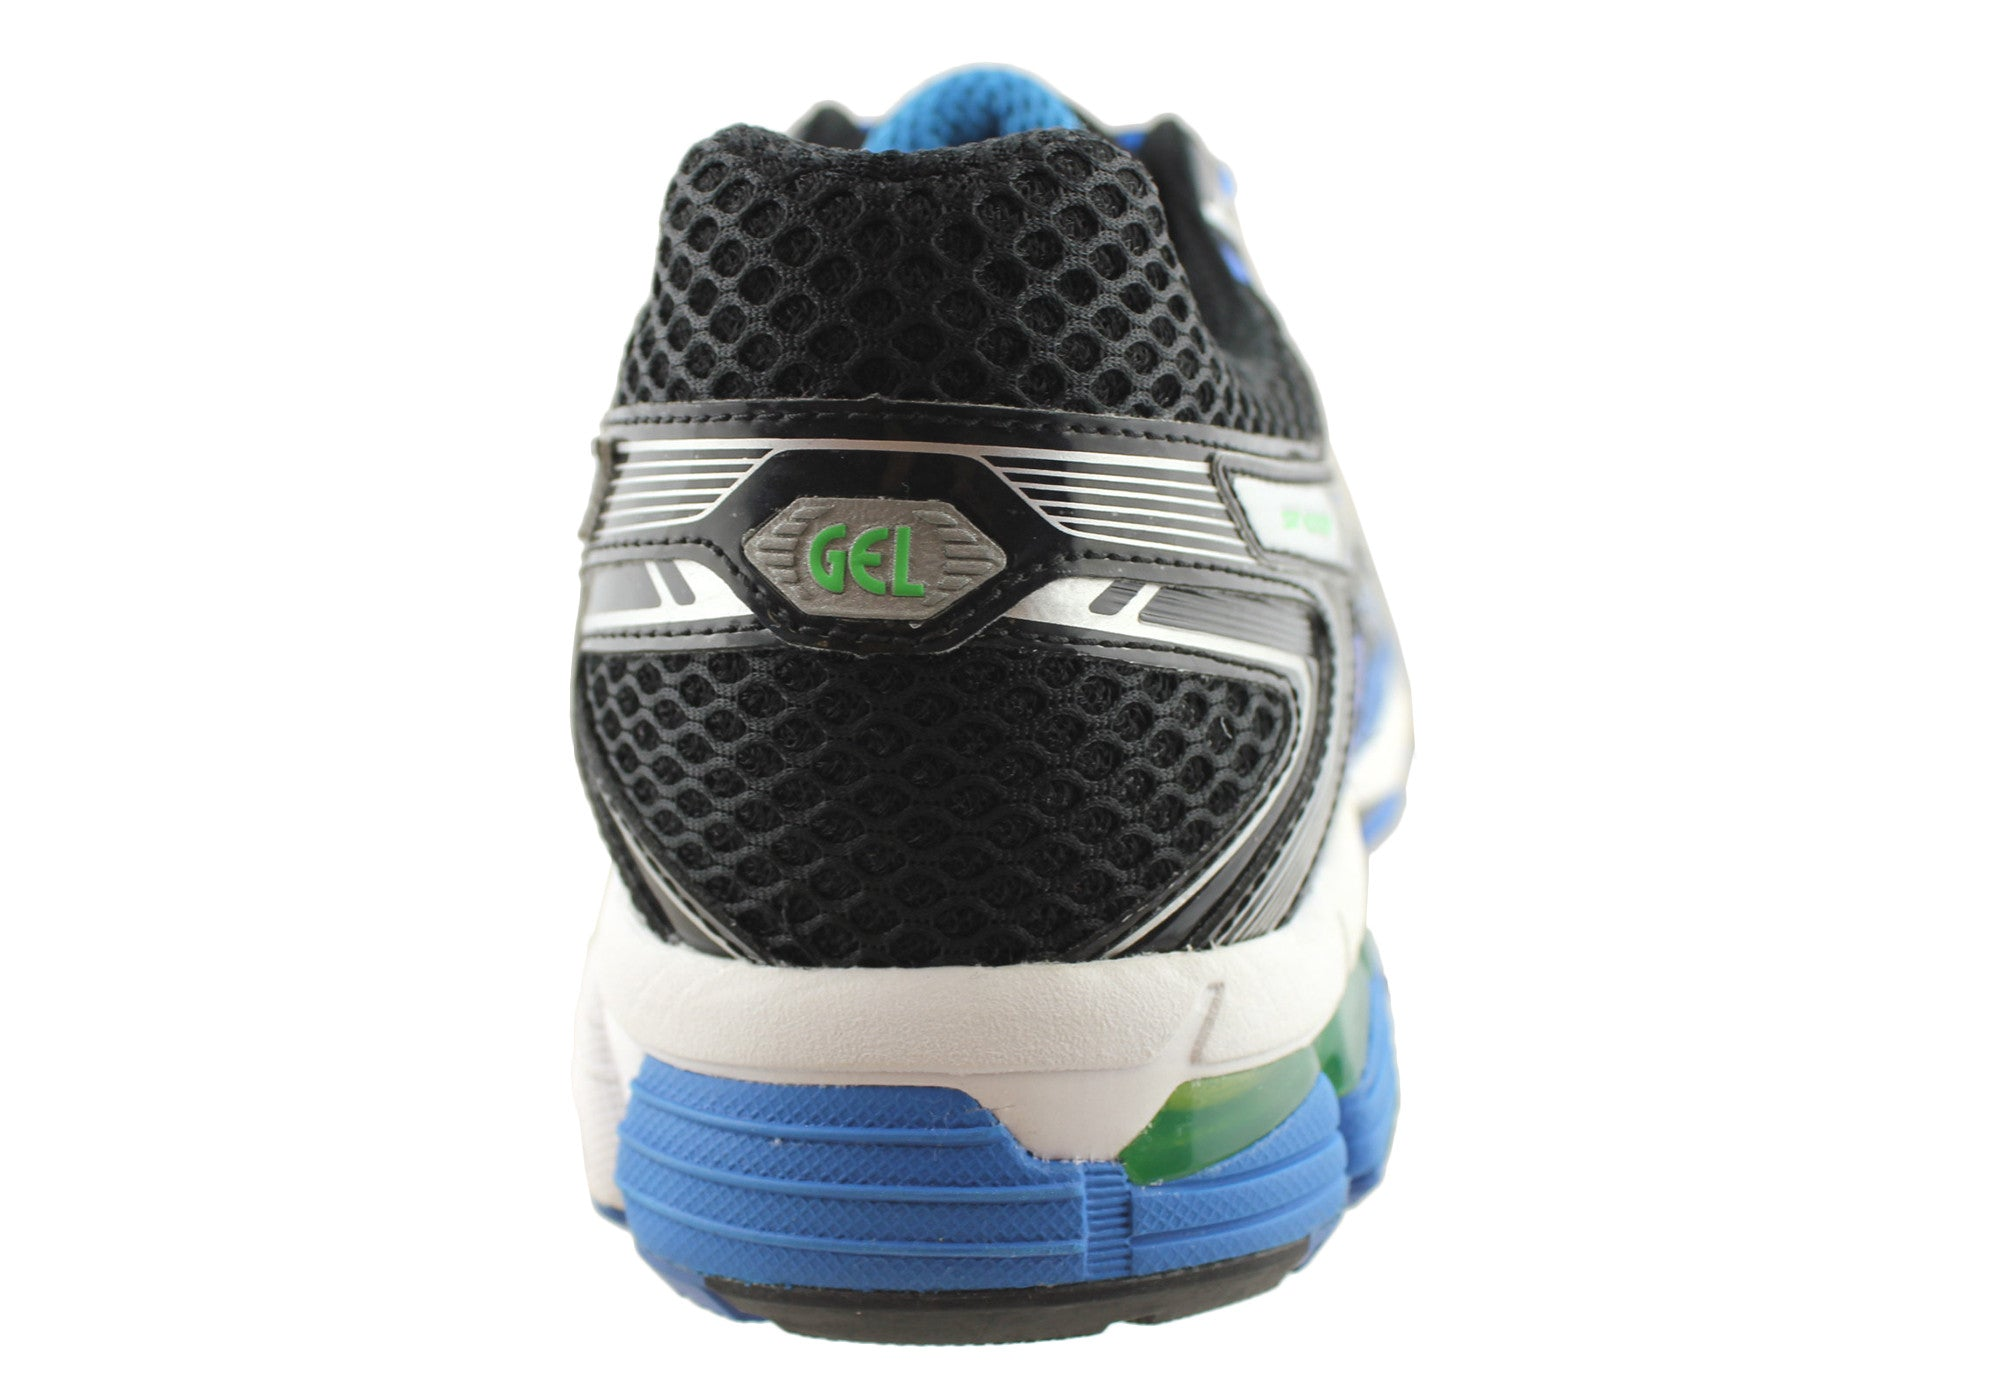 Asics GT1000 2 Mens Premium Cushioned Running Shoes